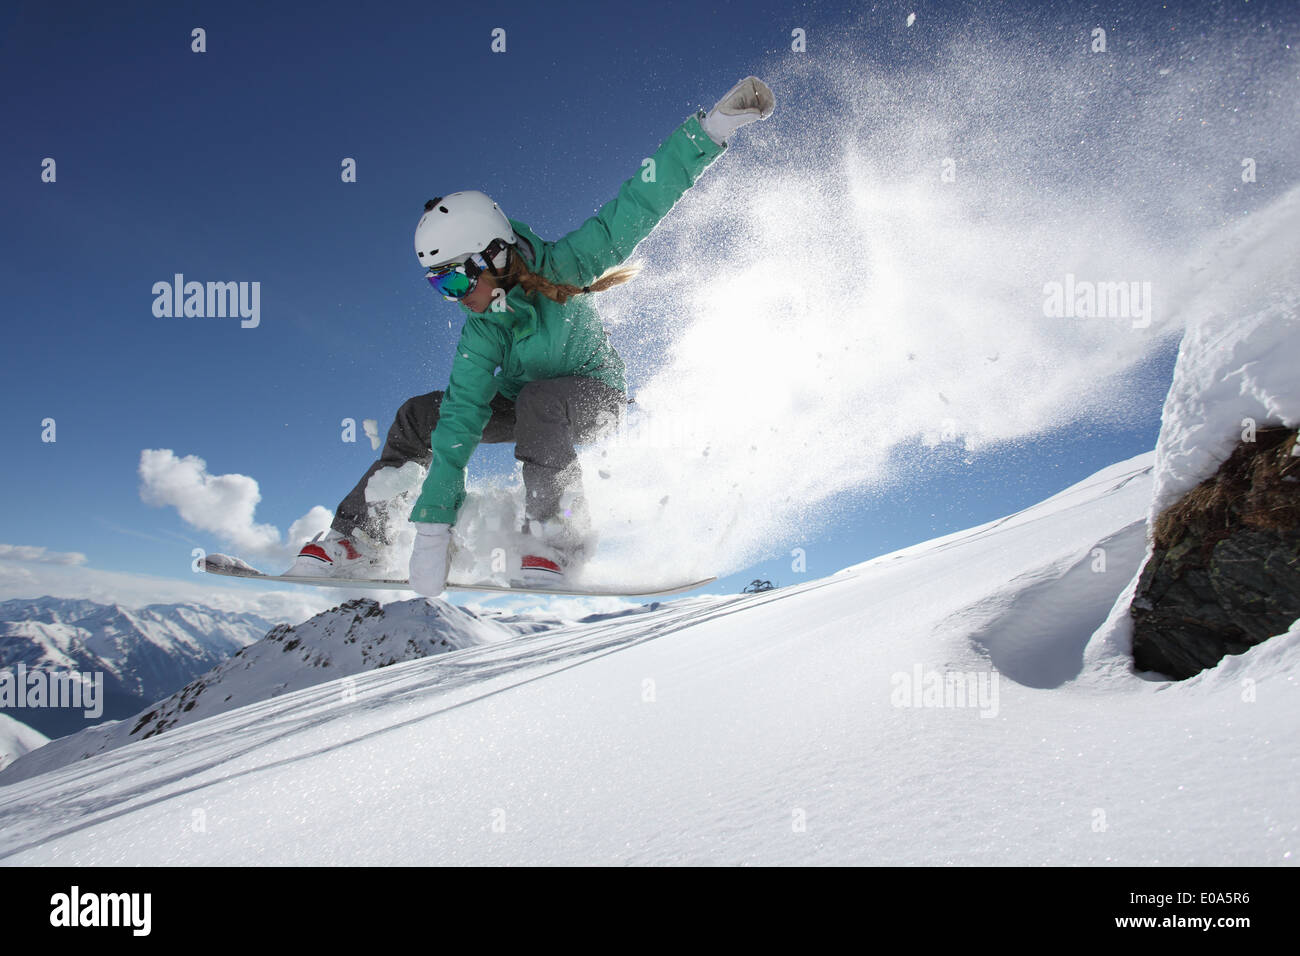 Young woman jumping on snowboard, Mayrhofen, Tyrol, Austria - Stock Image